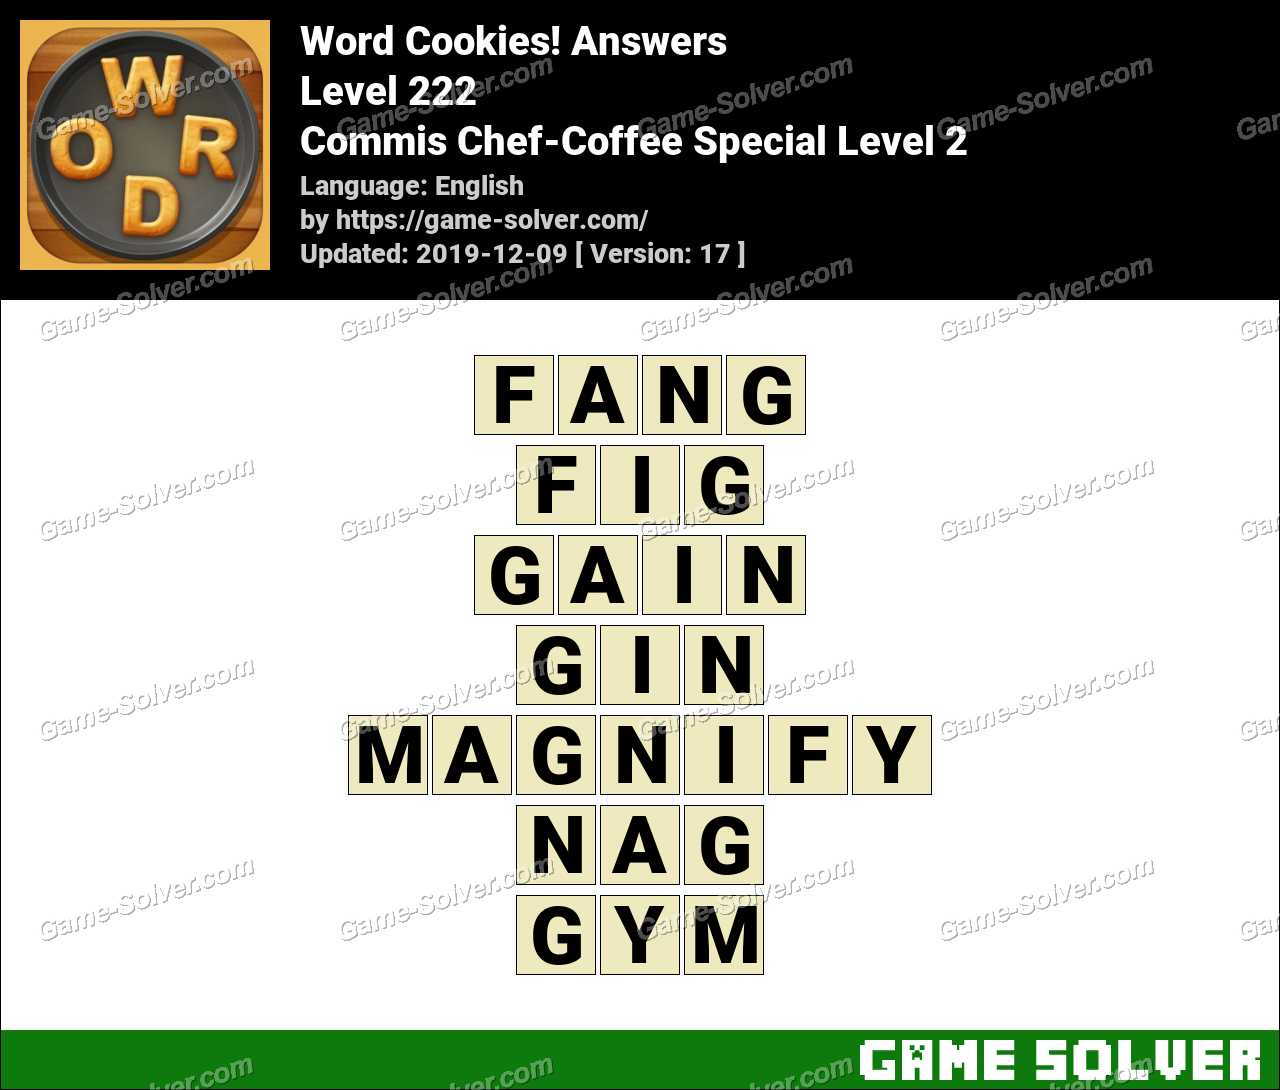 Word Cookies Commis Chef-Coffee Special Level 2 Answers